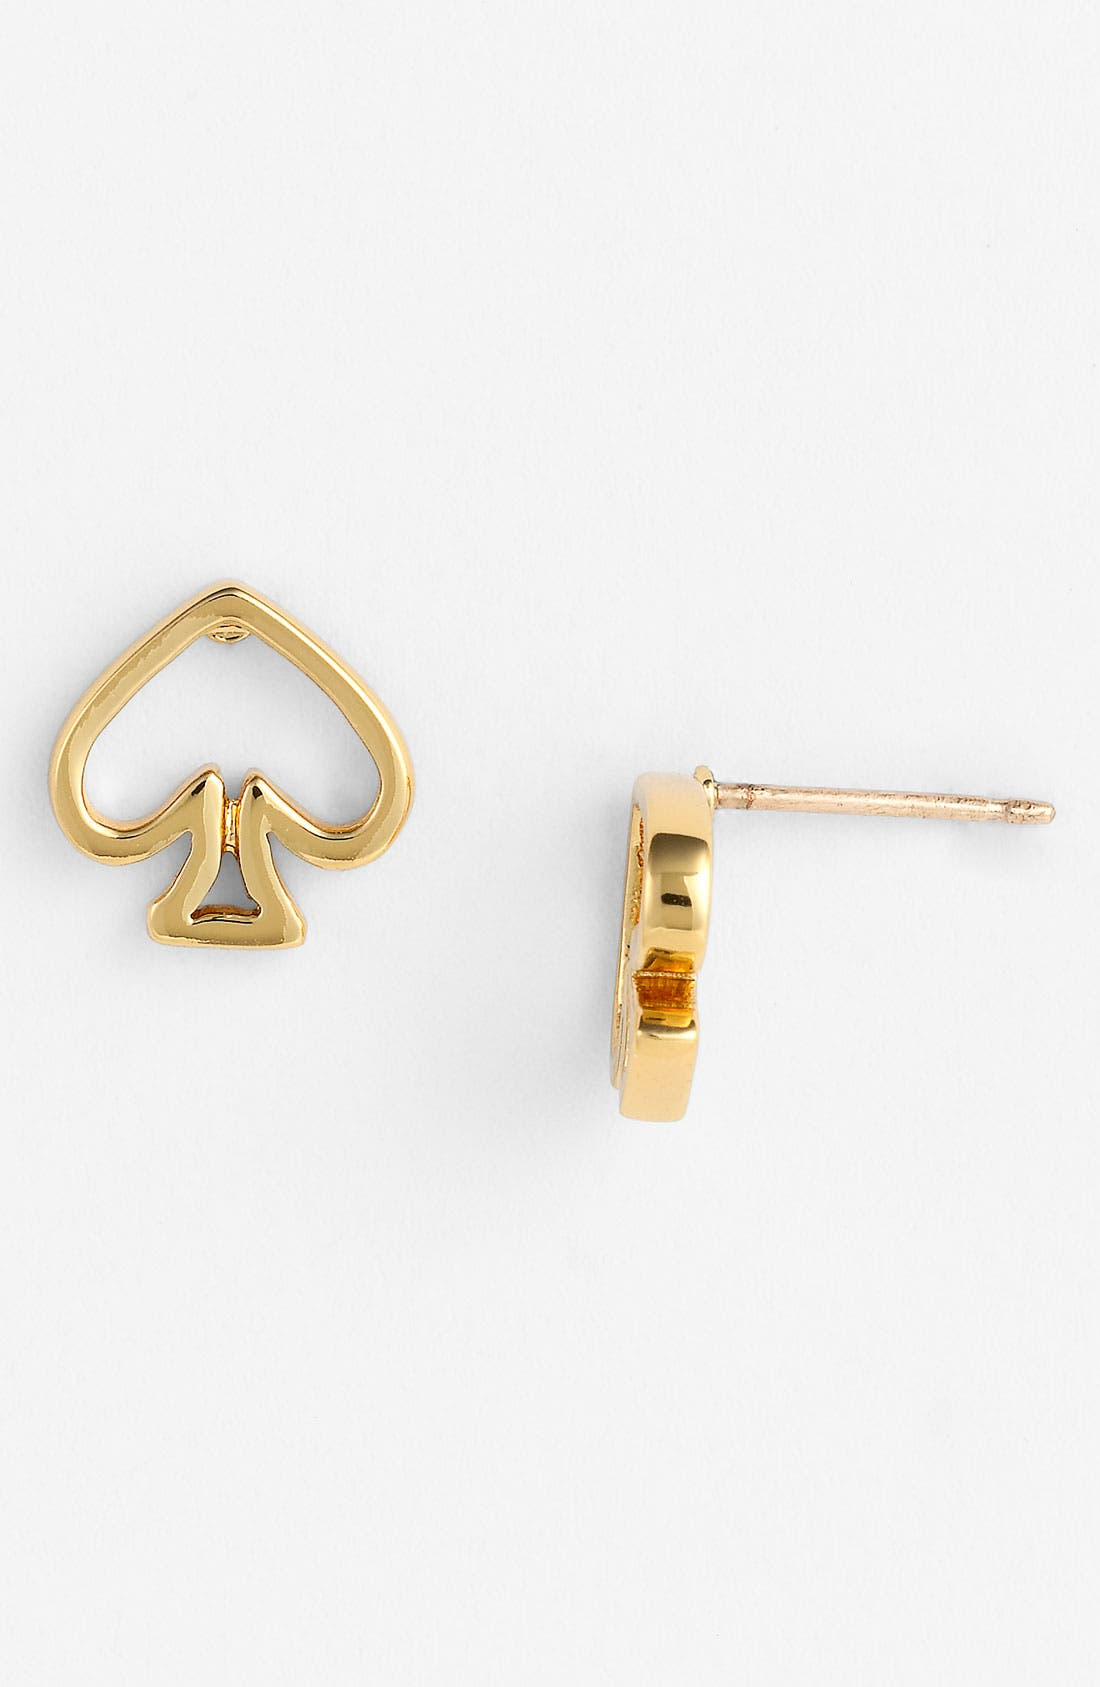 Alternate Image 1 Selected - kate spade new york 'open spade' stud earrings